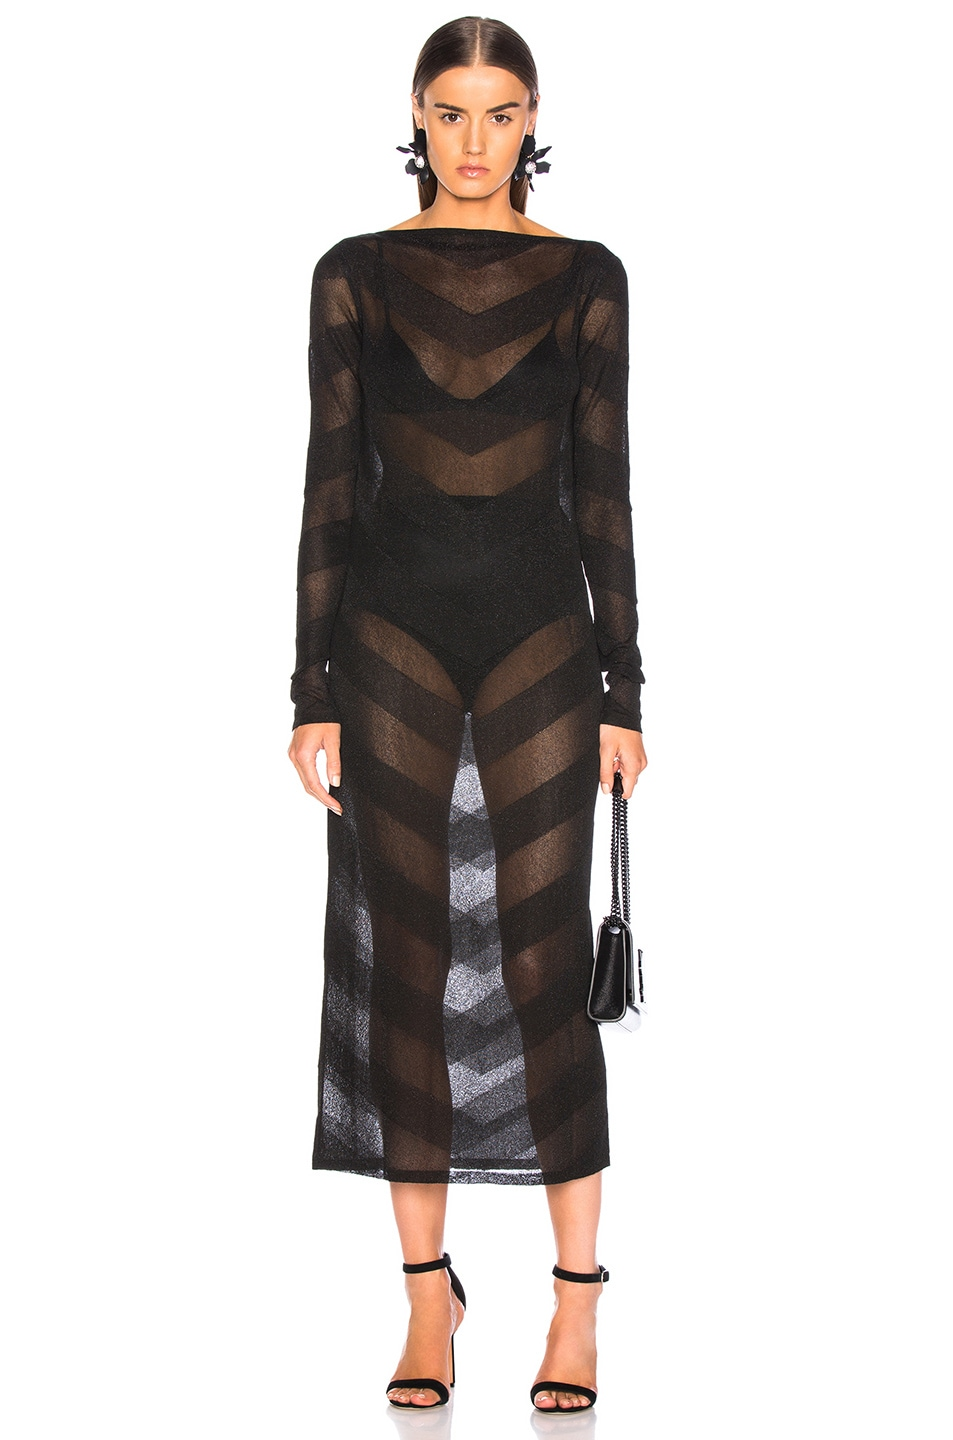 Image 2 of Zeynep Arcay for FWRD Knit V Dress in Black & Black